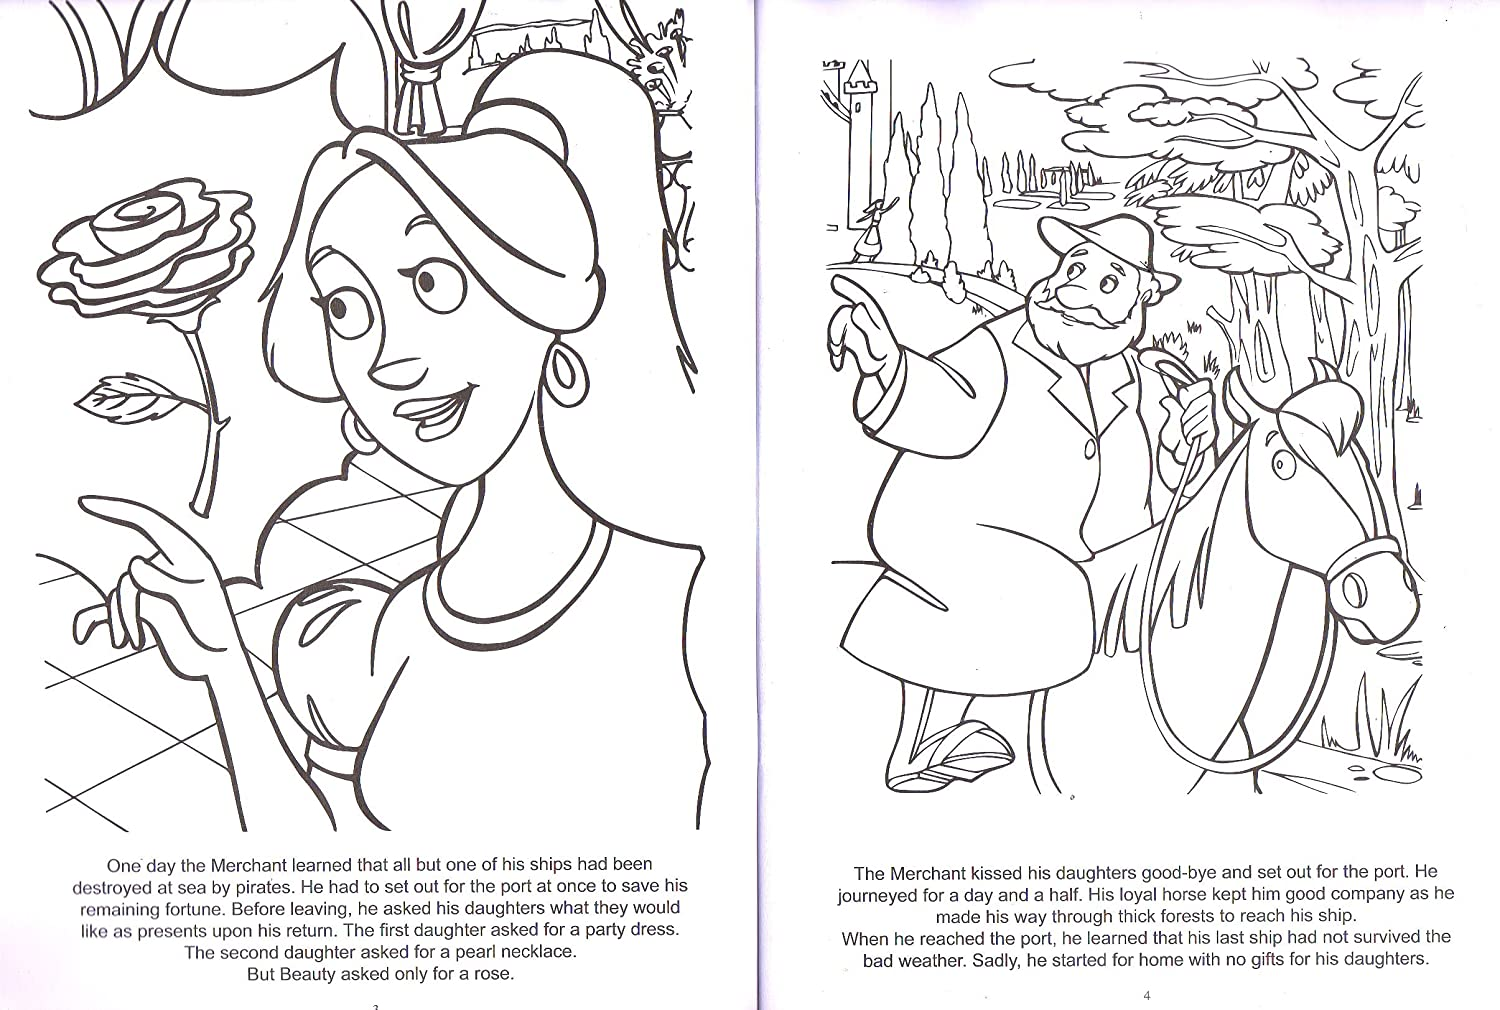 Coloring Book Paper Craft Classic Tales Beauty and the Beast Color The Story